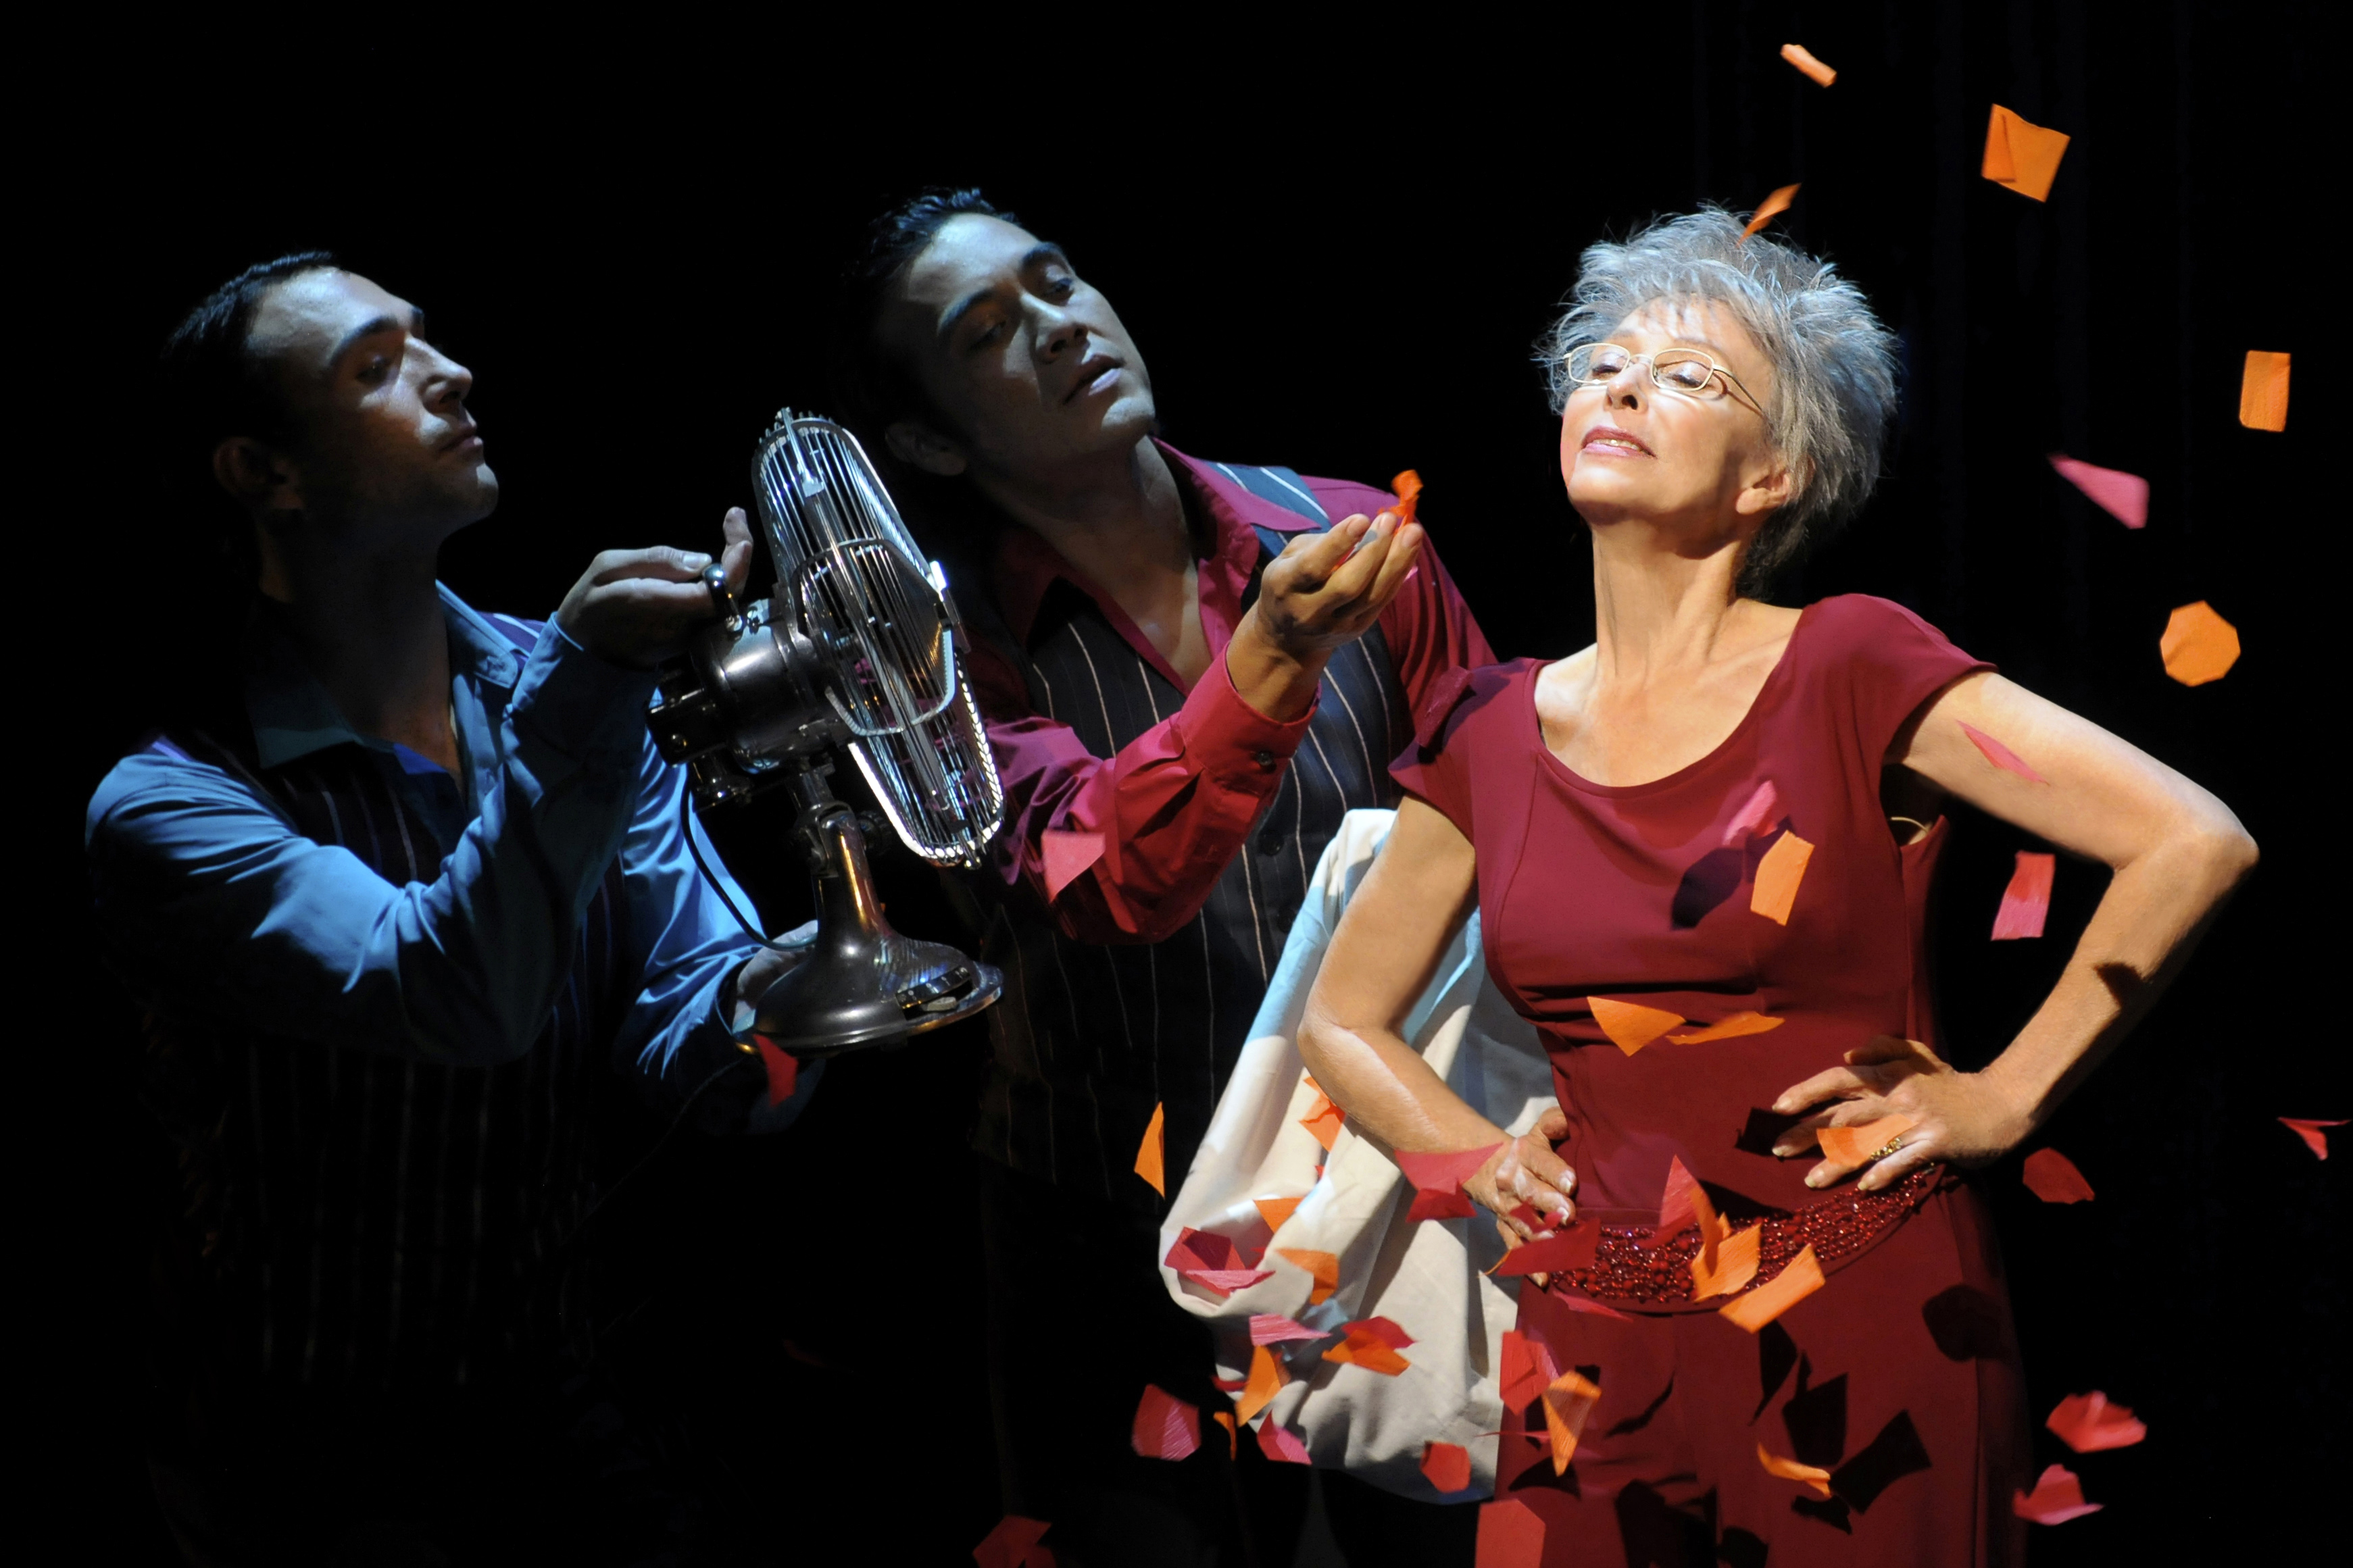 Hollywood legend Rita Moreno relives the highlights of her celebrated career onstage in an autobiographical performace at the Berkeley Repertory Theatre.